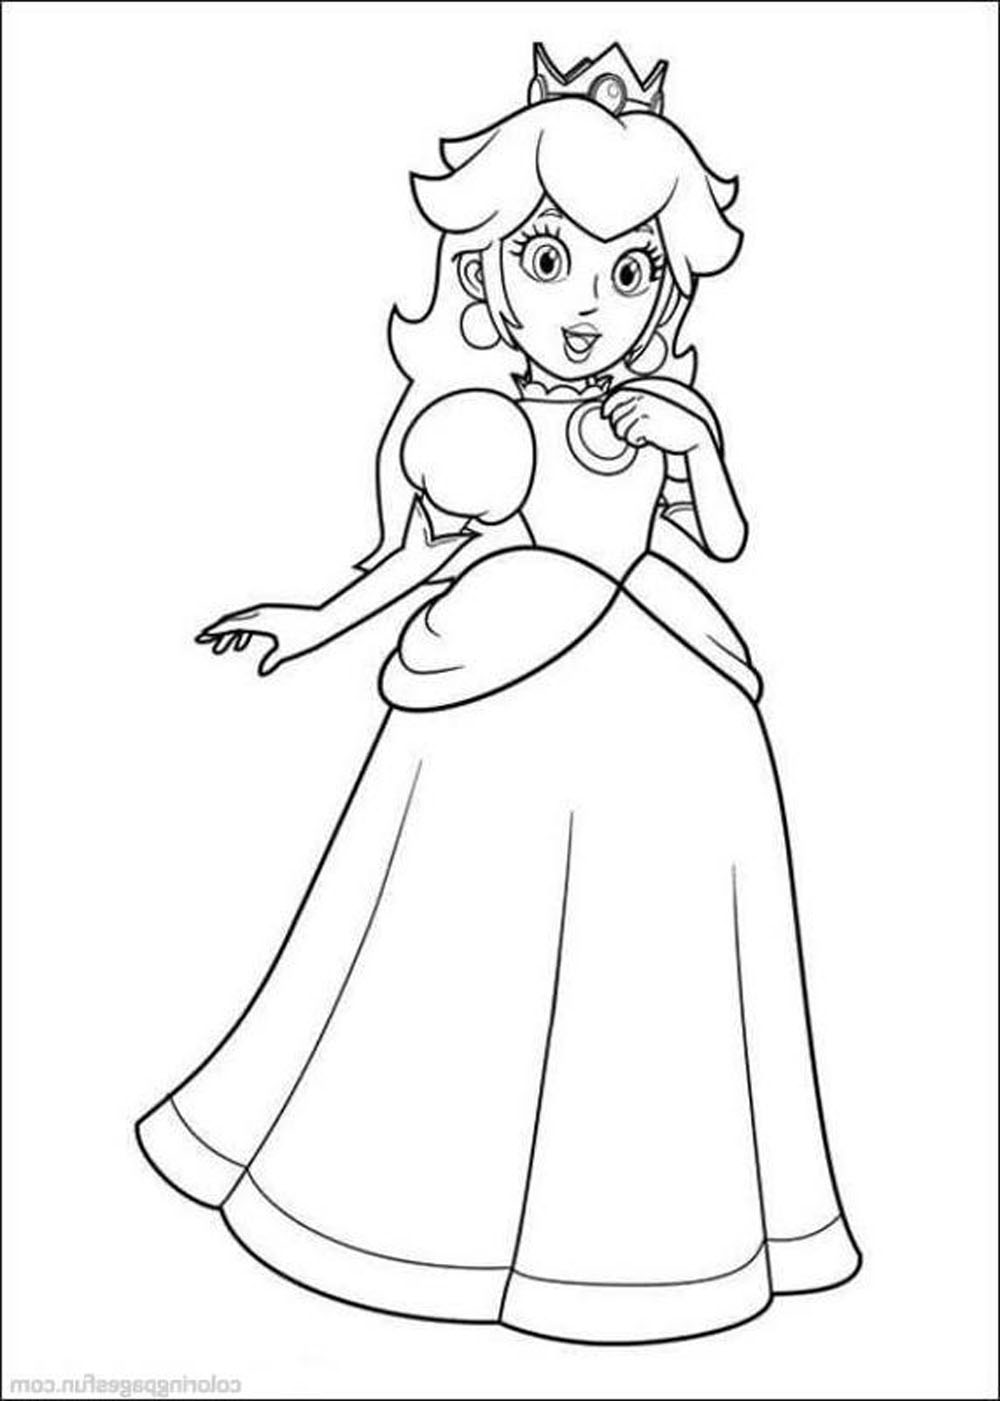 Paper Mario Online Coloring Pages Index Super Bros On Shop Related Products